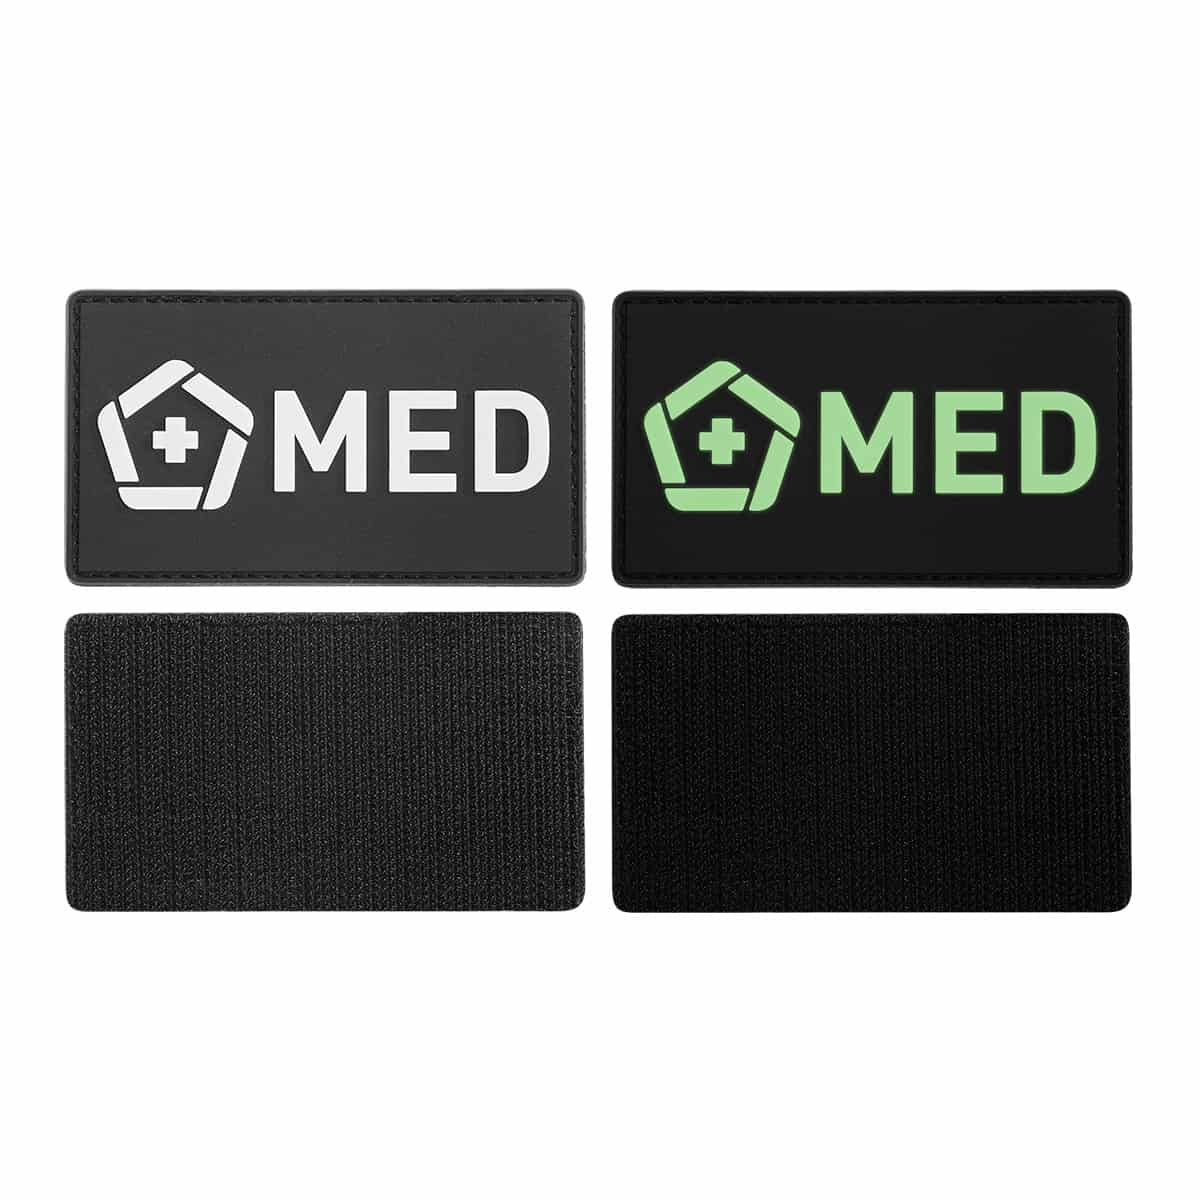 combat medical patch med glow in the dark